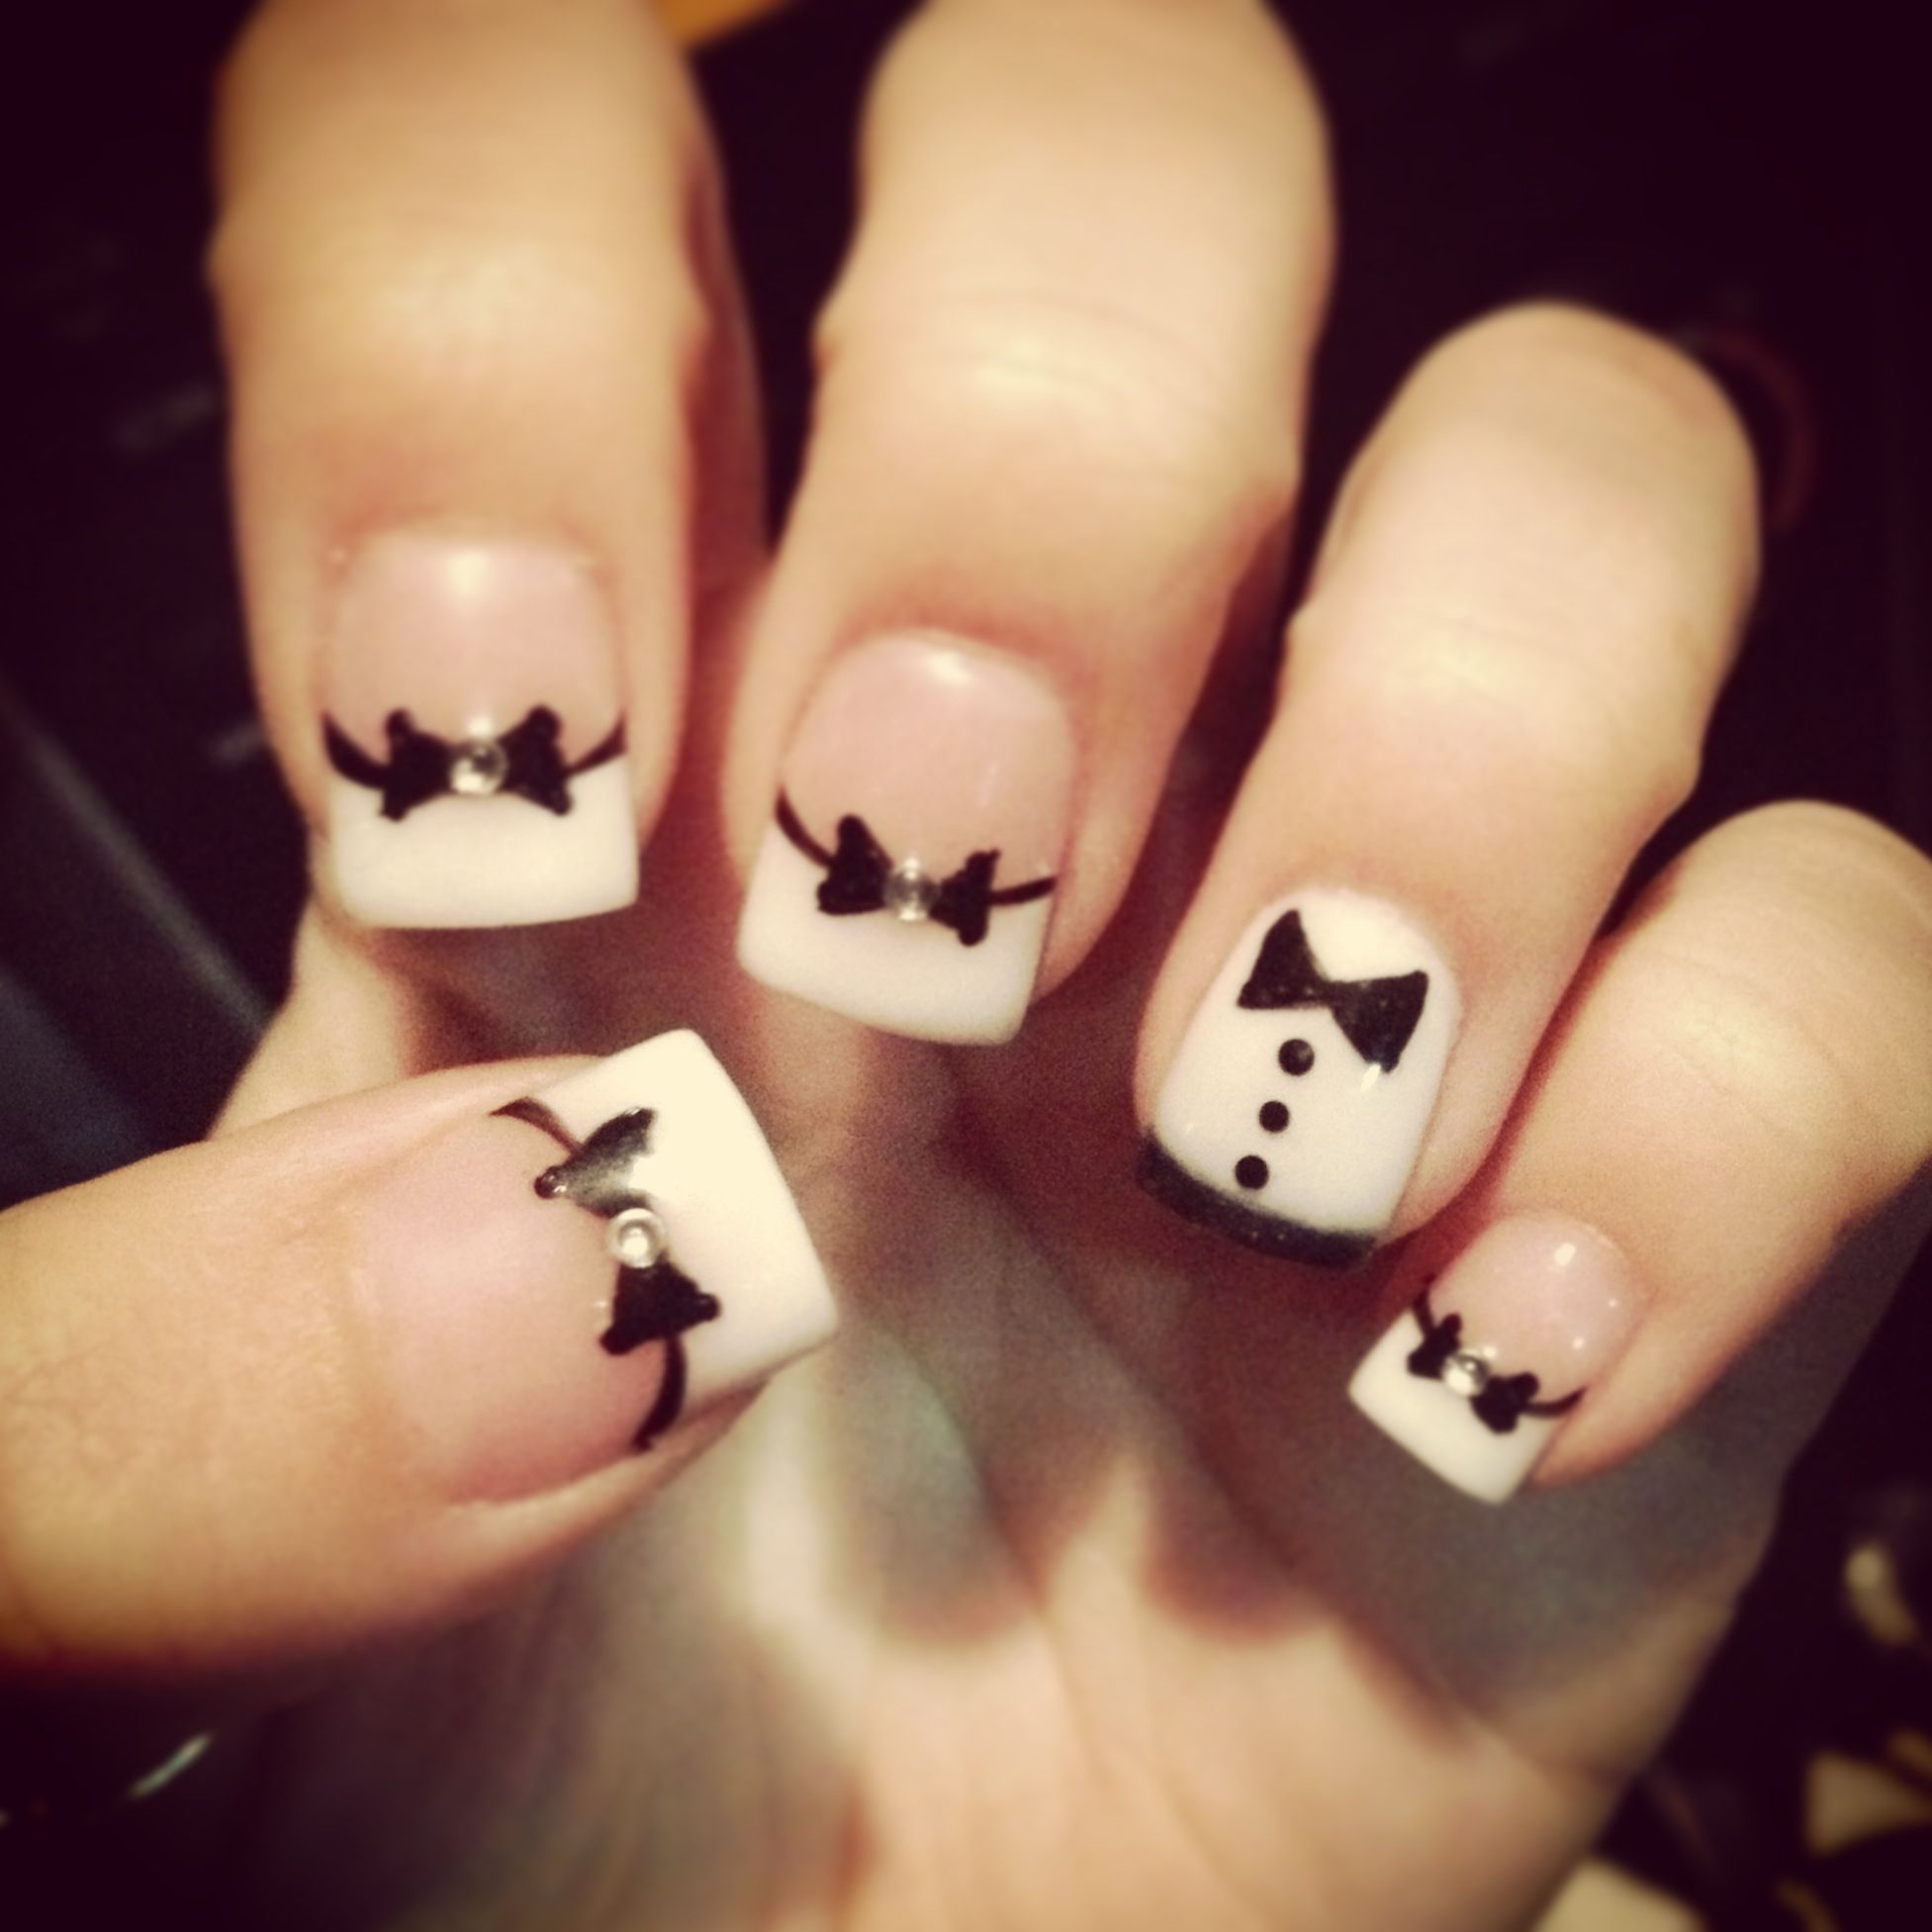 bow tie tuxedo acrylic nail design cute get the suit